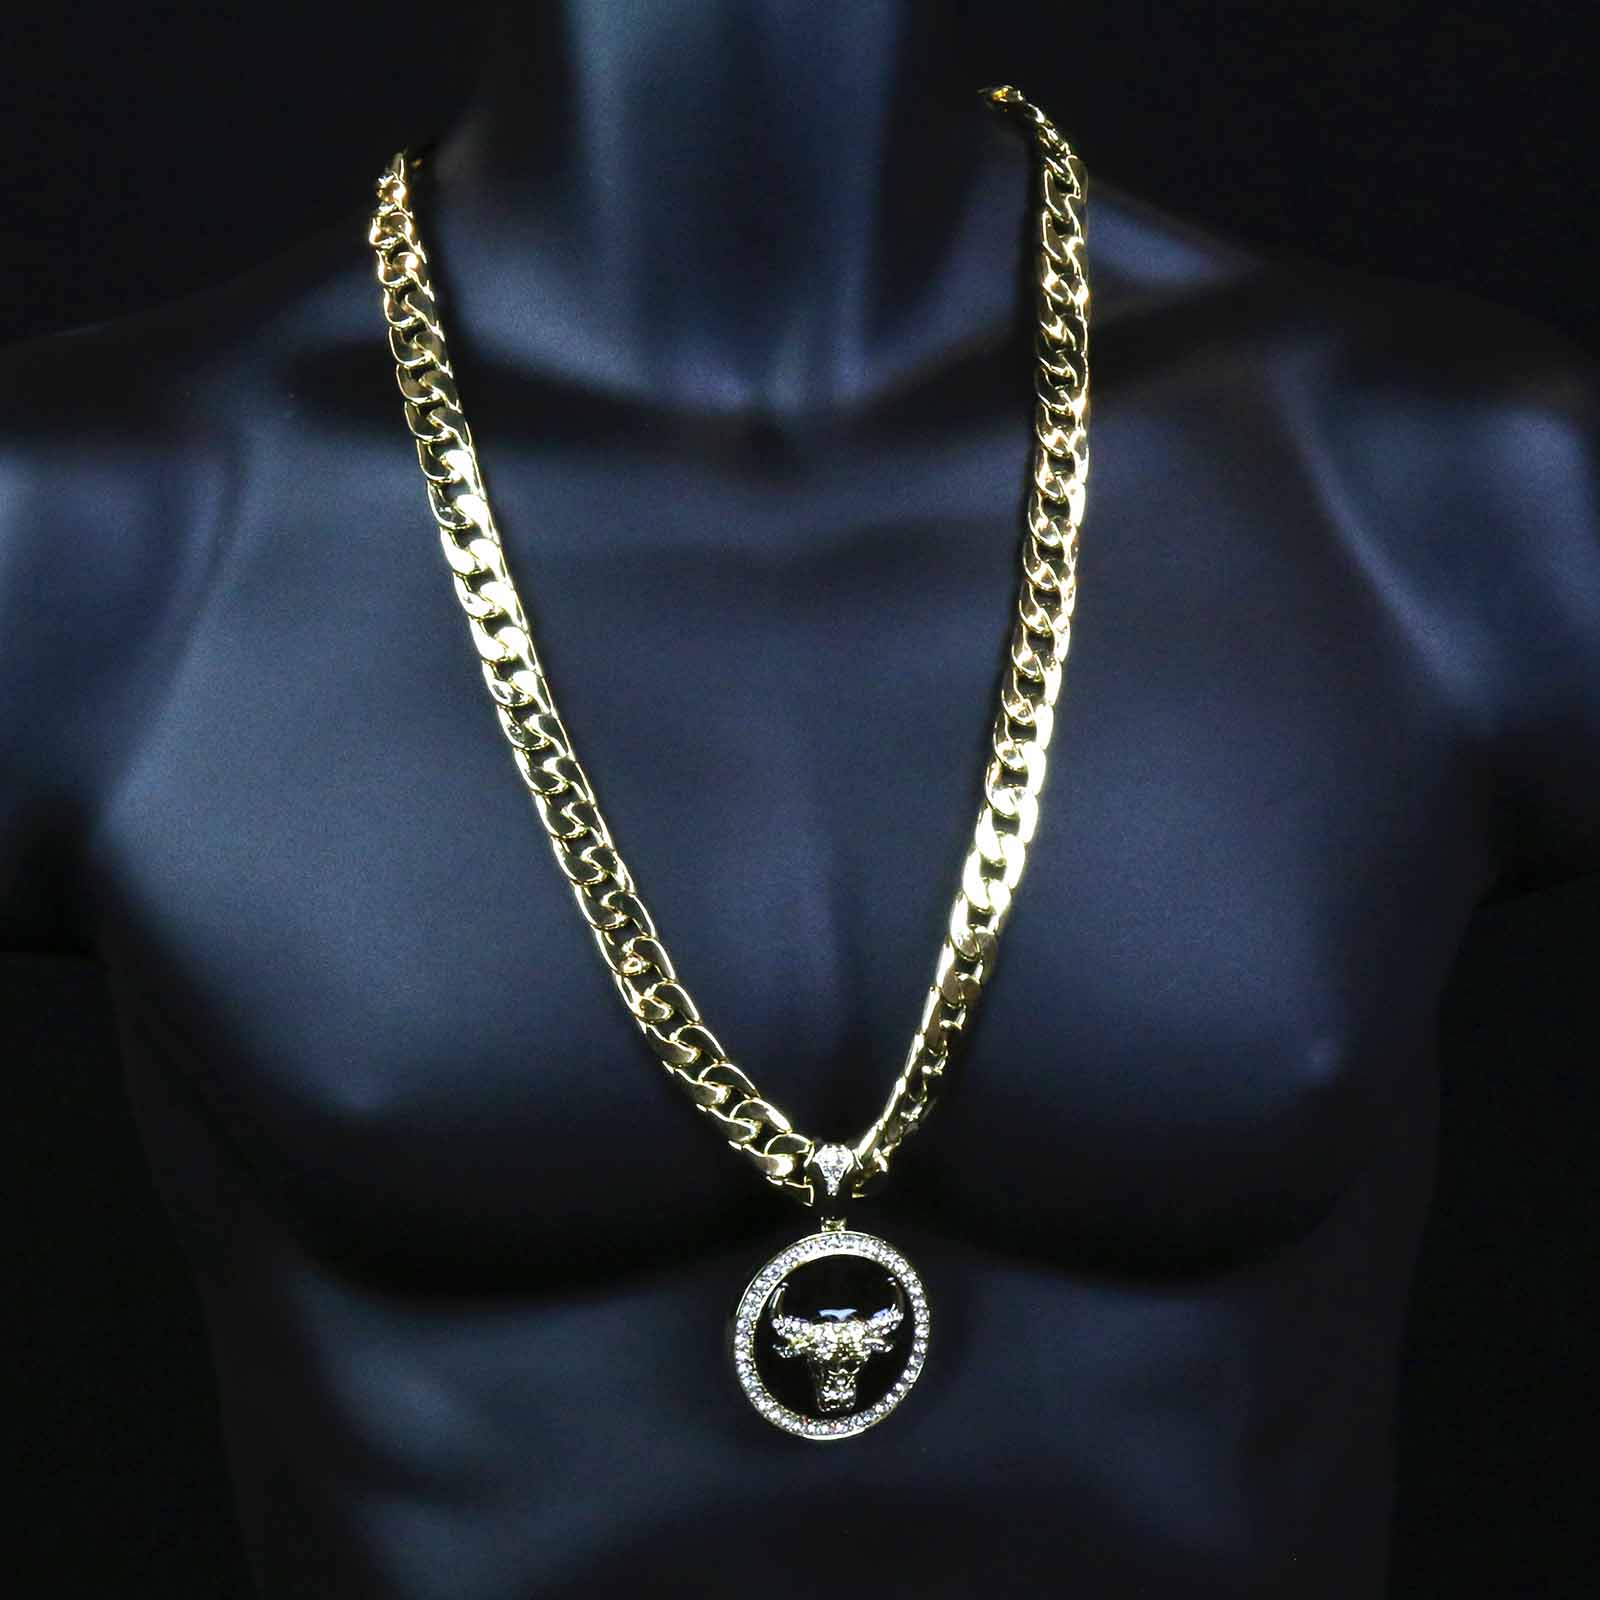 CUBAN CHAIN & BRACELET GOLD/BLACK BULL